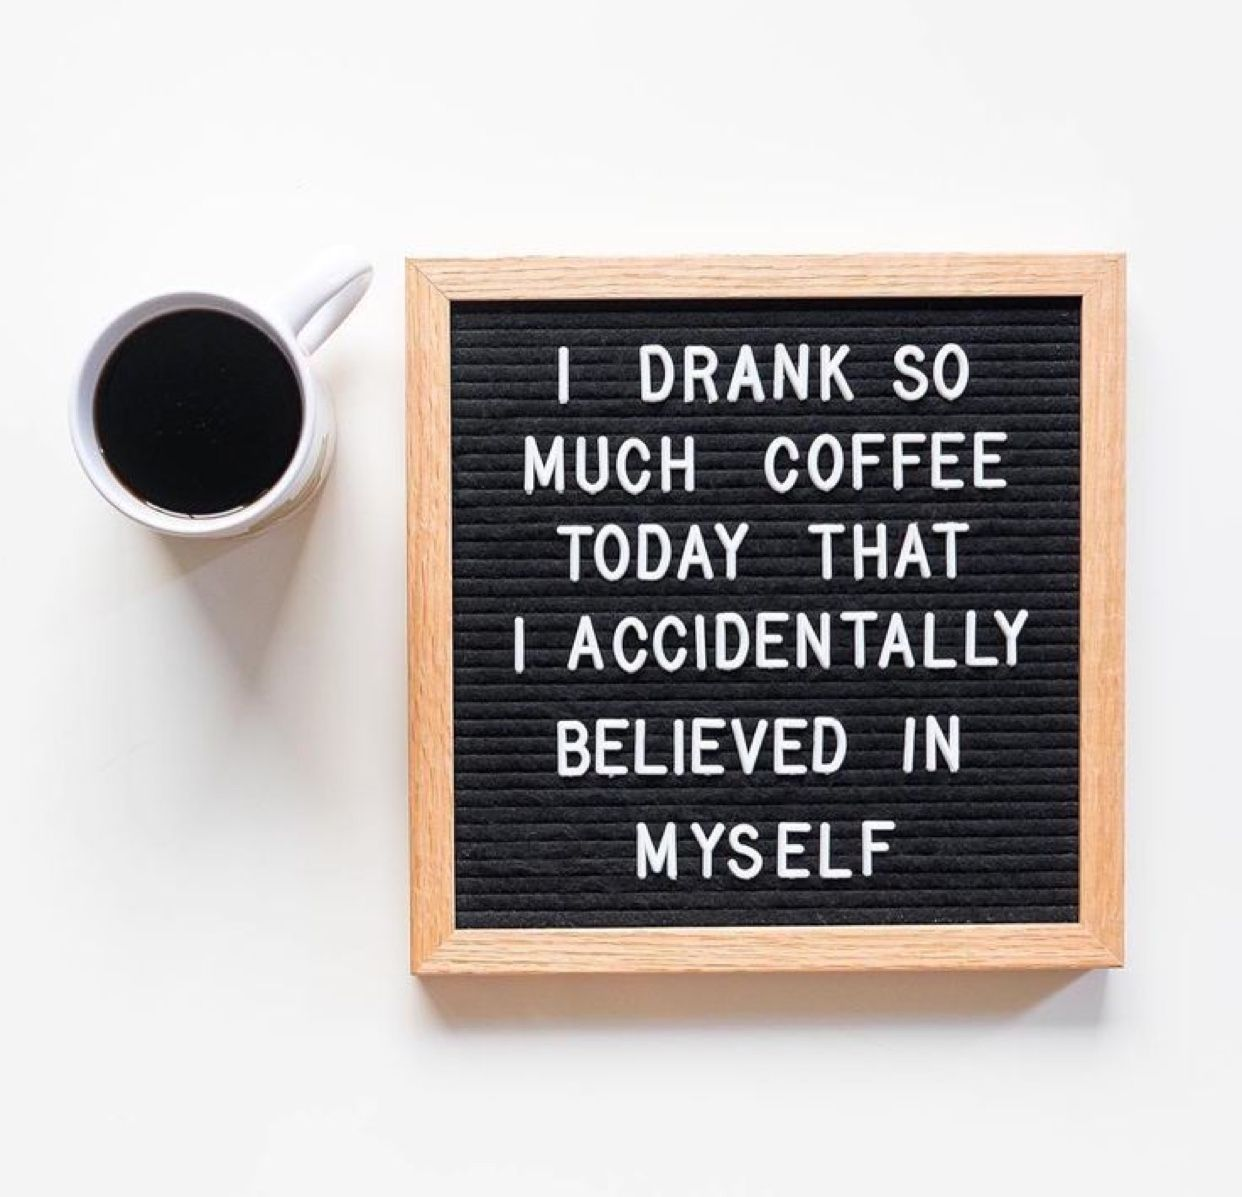 Pin by Jennifer Schwab on Letter board | Coffee quotes, Too much ... #tooMuchCoffee